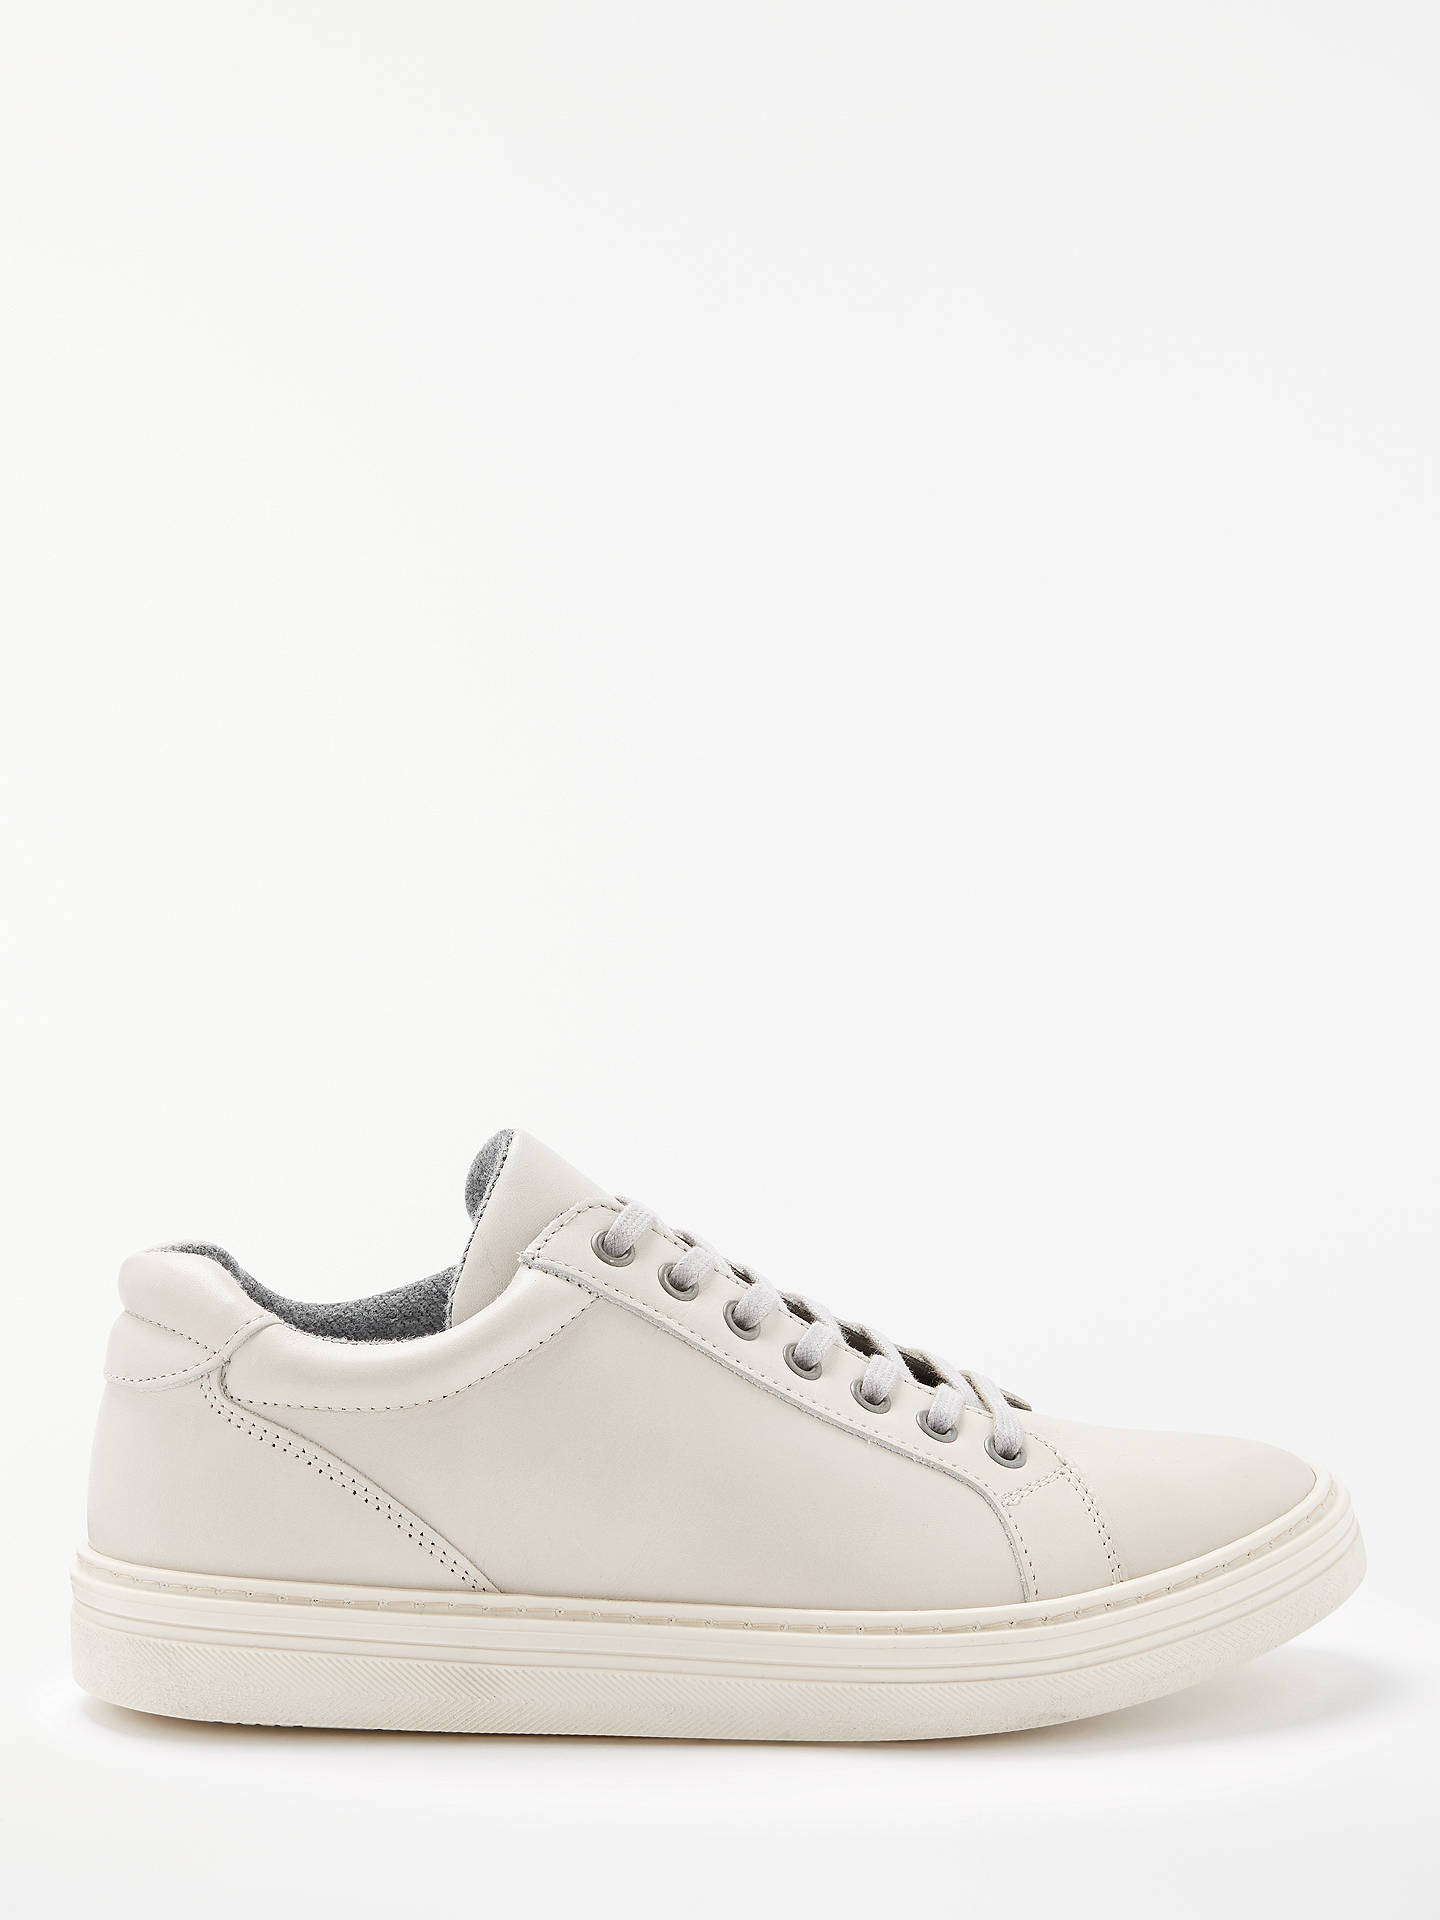 BuyJohn Lewis & Partners Clapton Leather Cupsole Trainers, Ecru, 7 Online at johnlewis.com